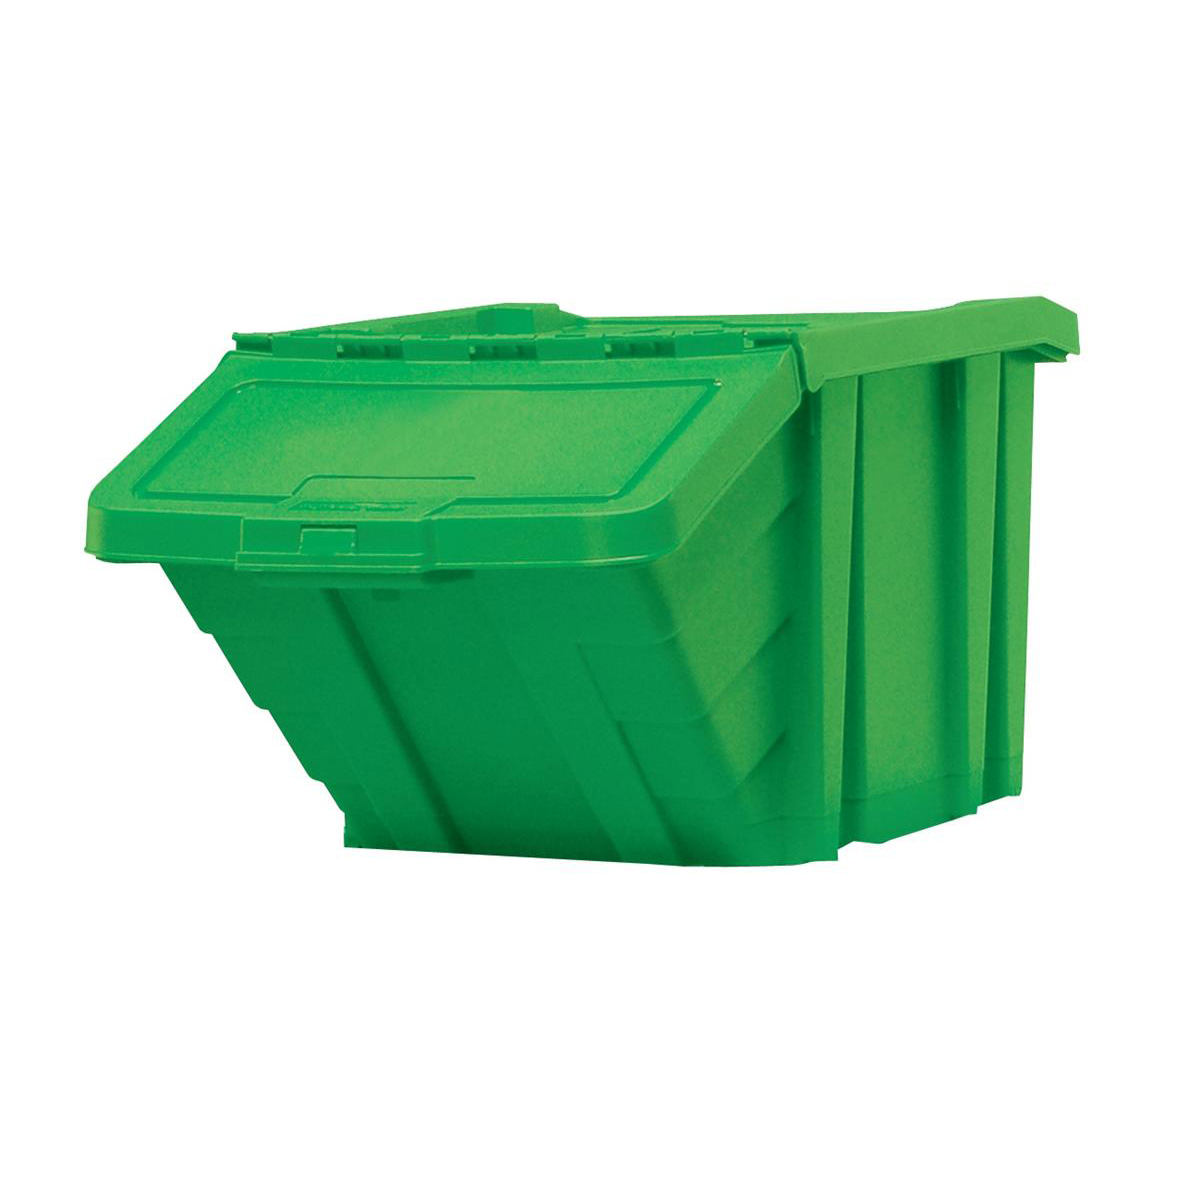 Recycling Bins Recycle Storage Bin and Lid Green 400x635x345mm